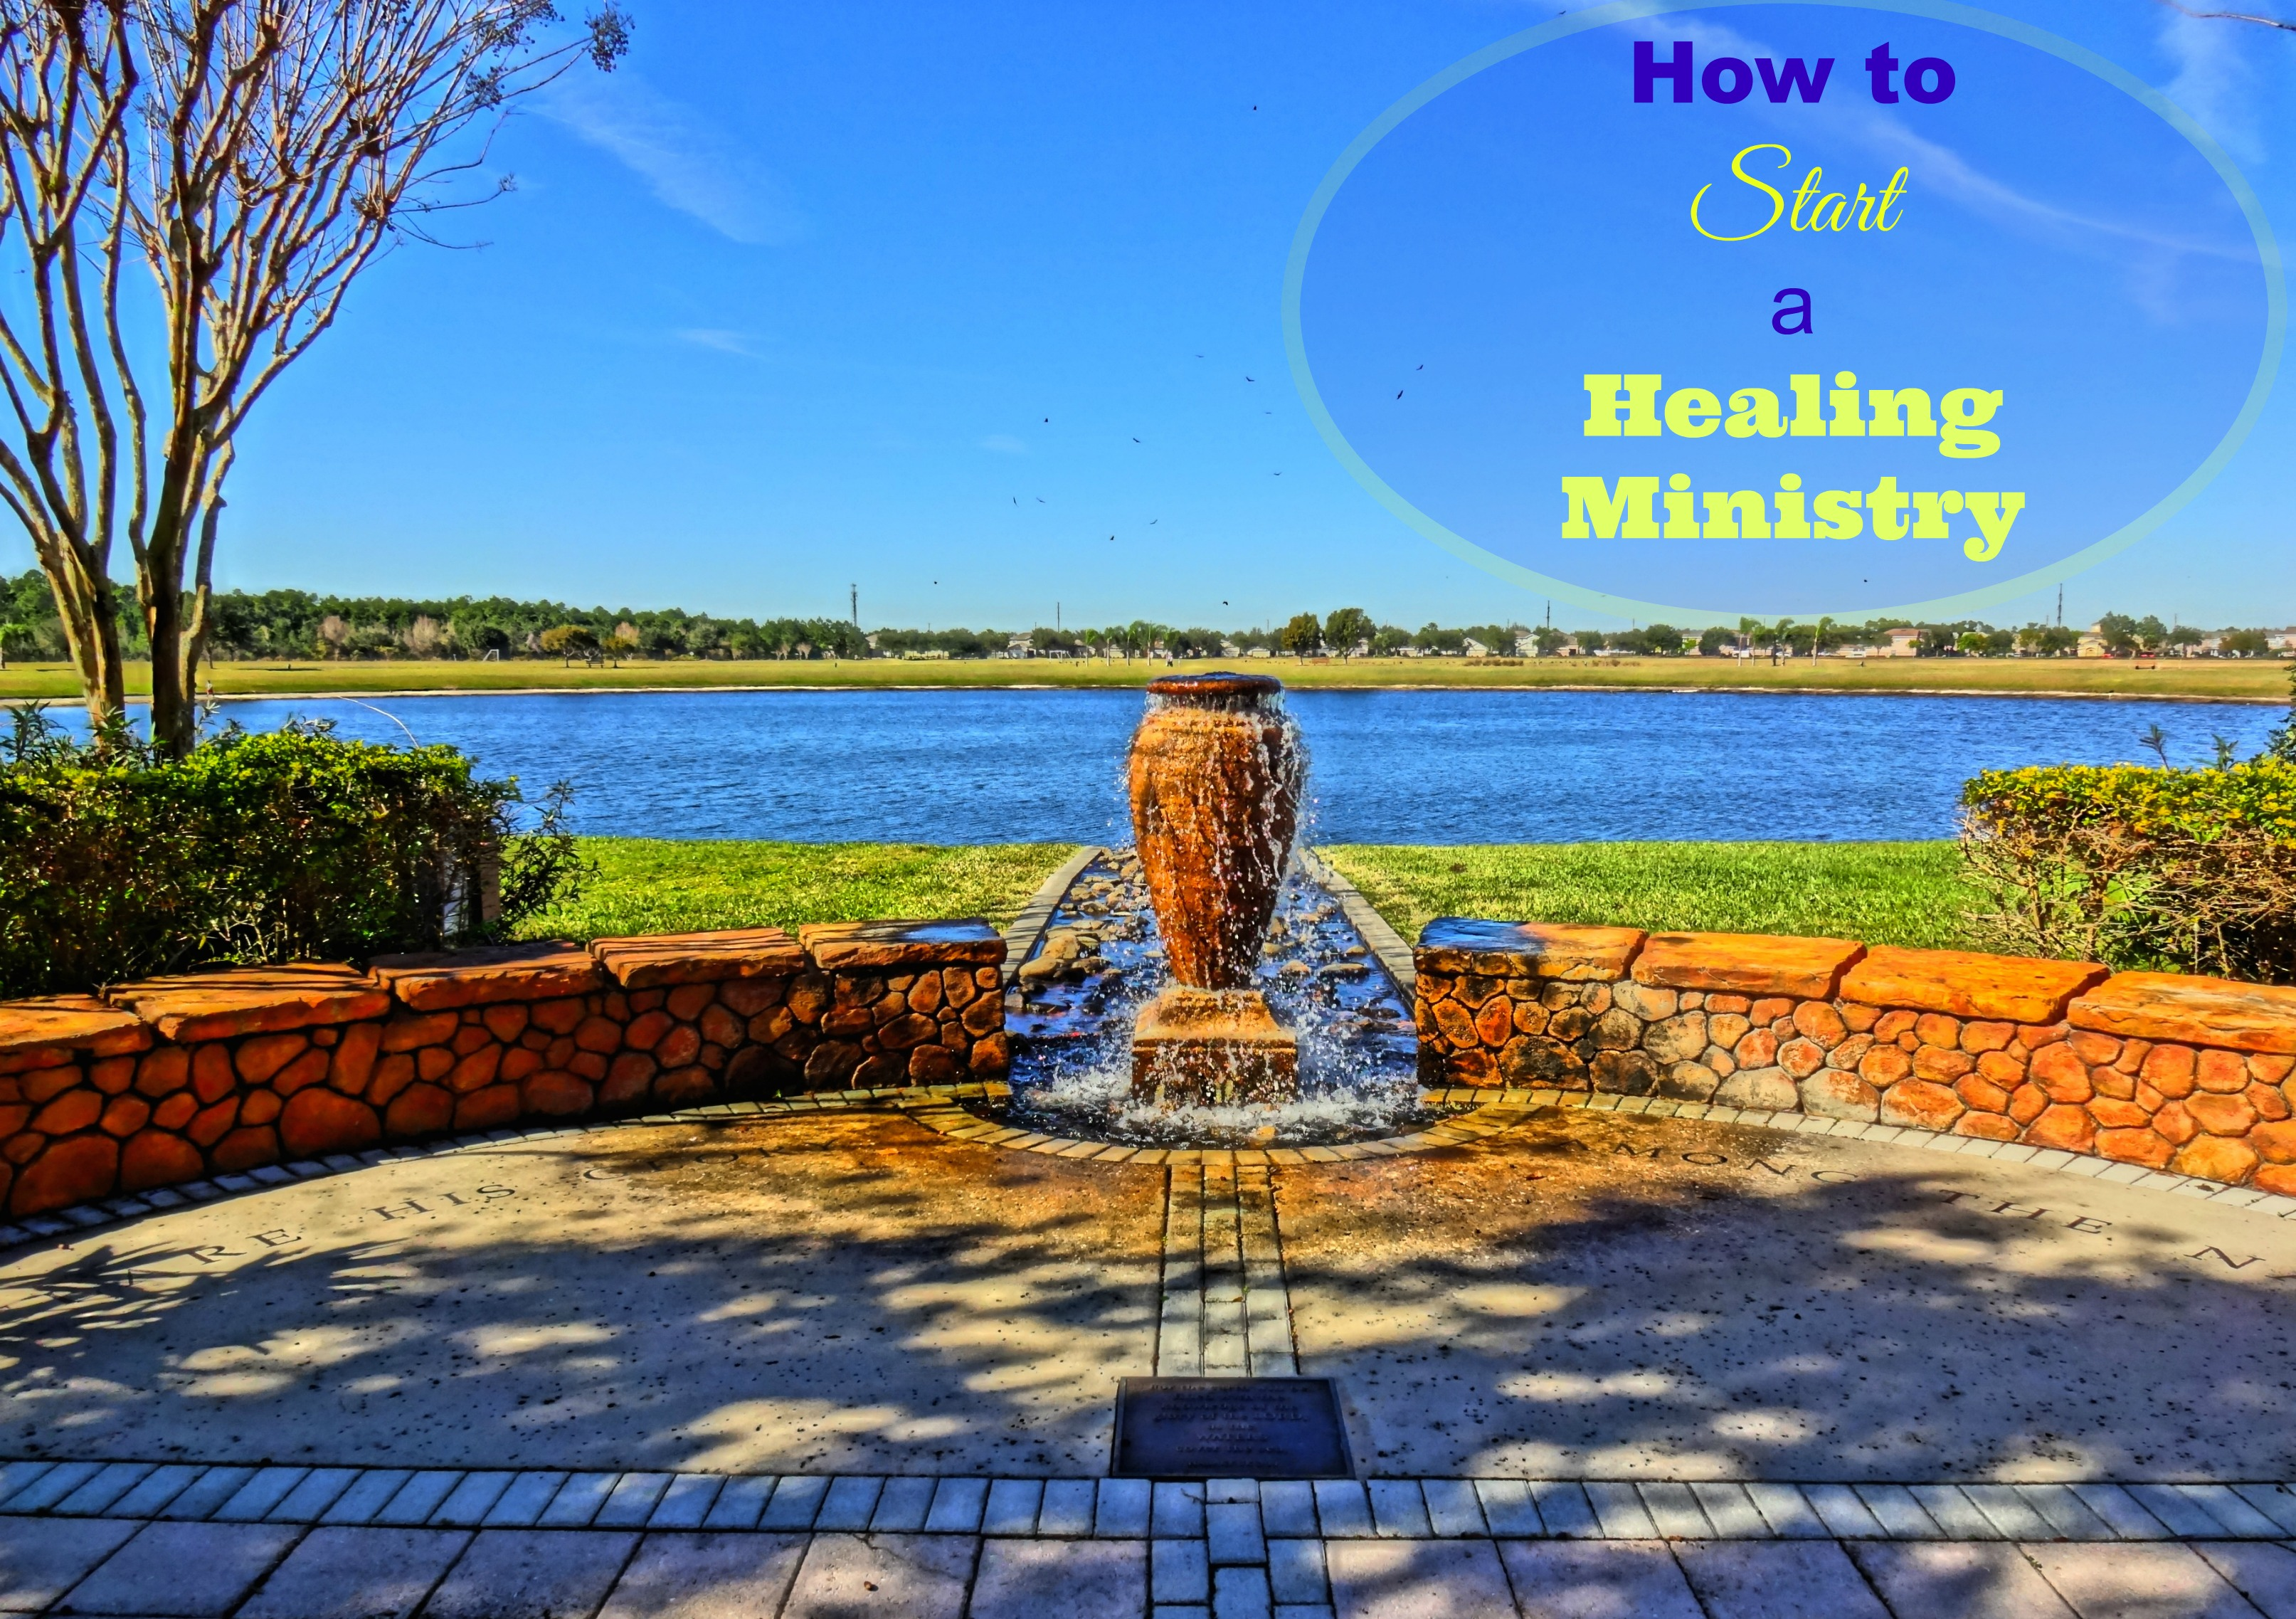 How to Start a Healing Ministry